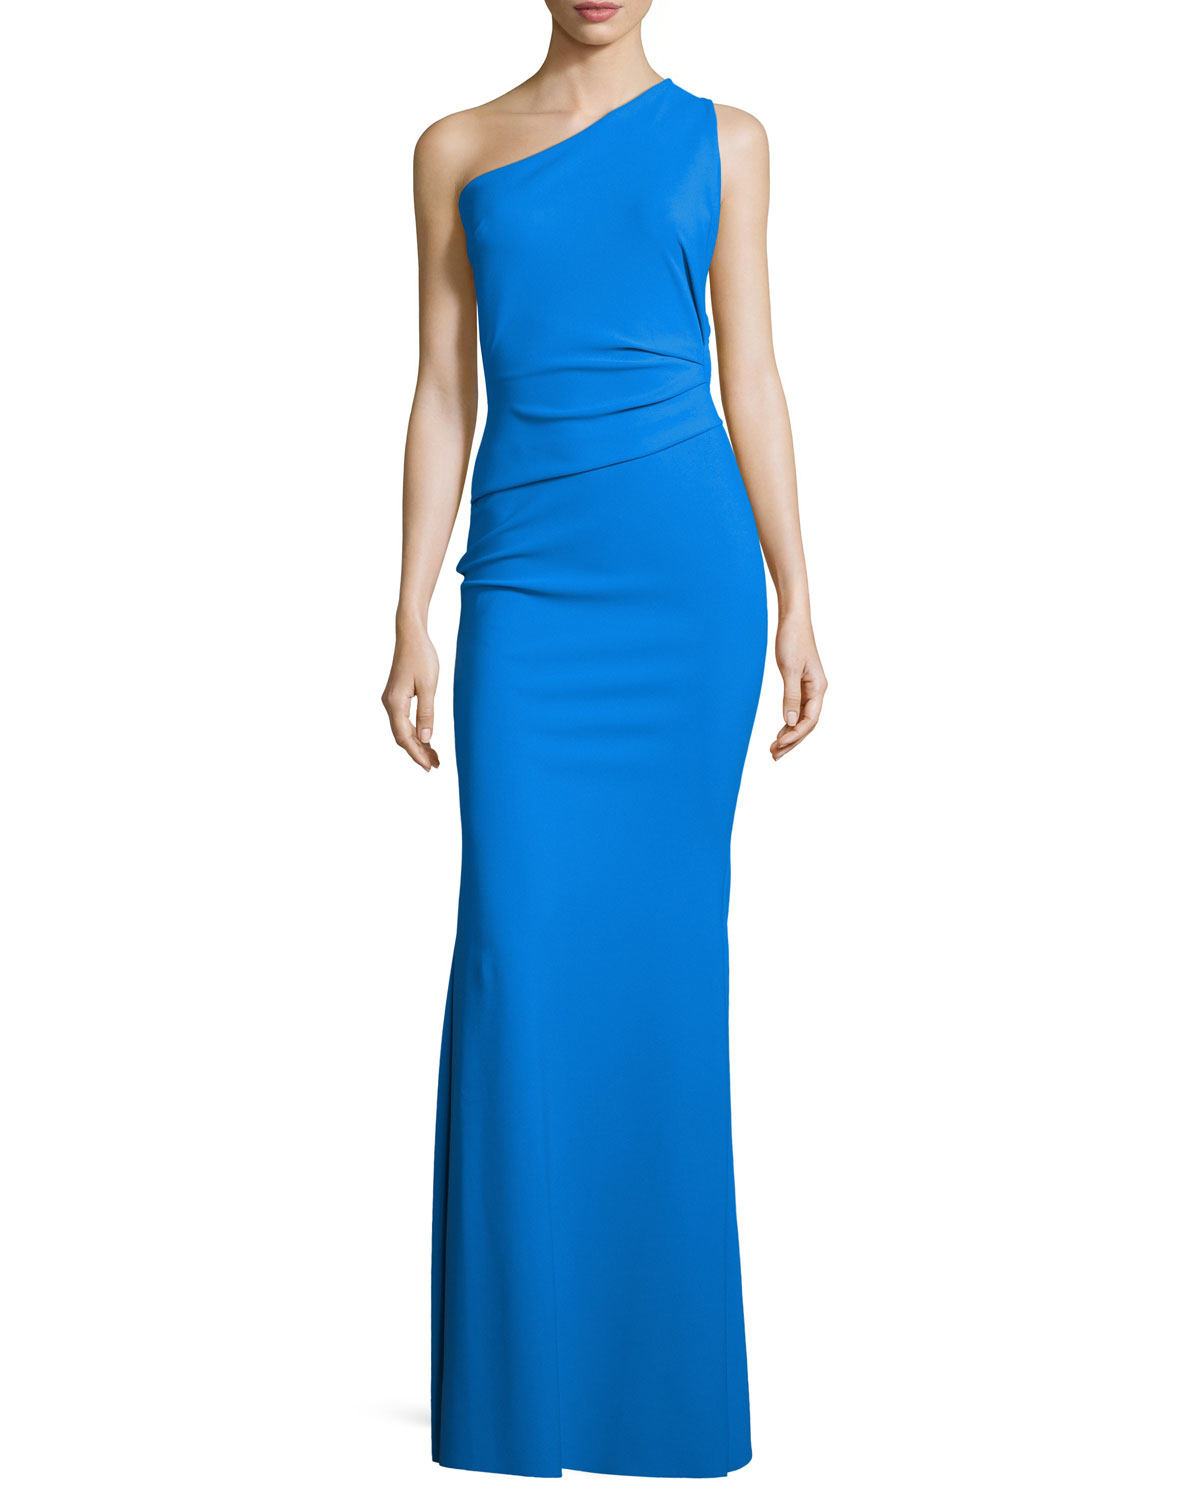 Chiara Boni The Most Popular Dress In America: La Petite Robe Di Chiara Boni One-shoulder Strappy